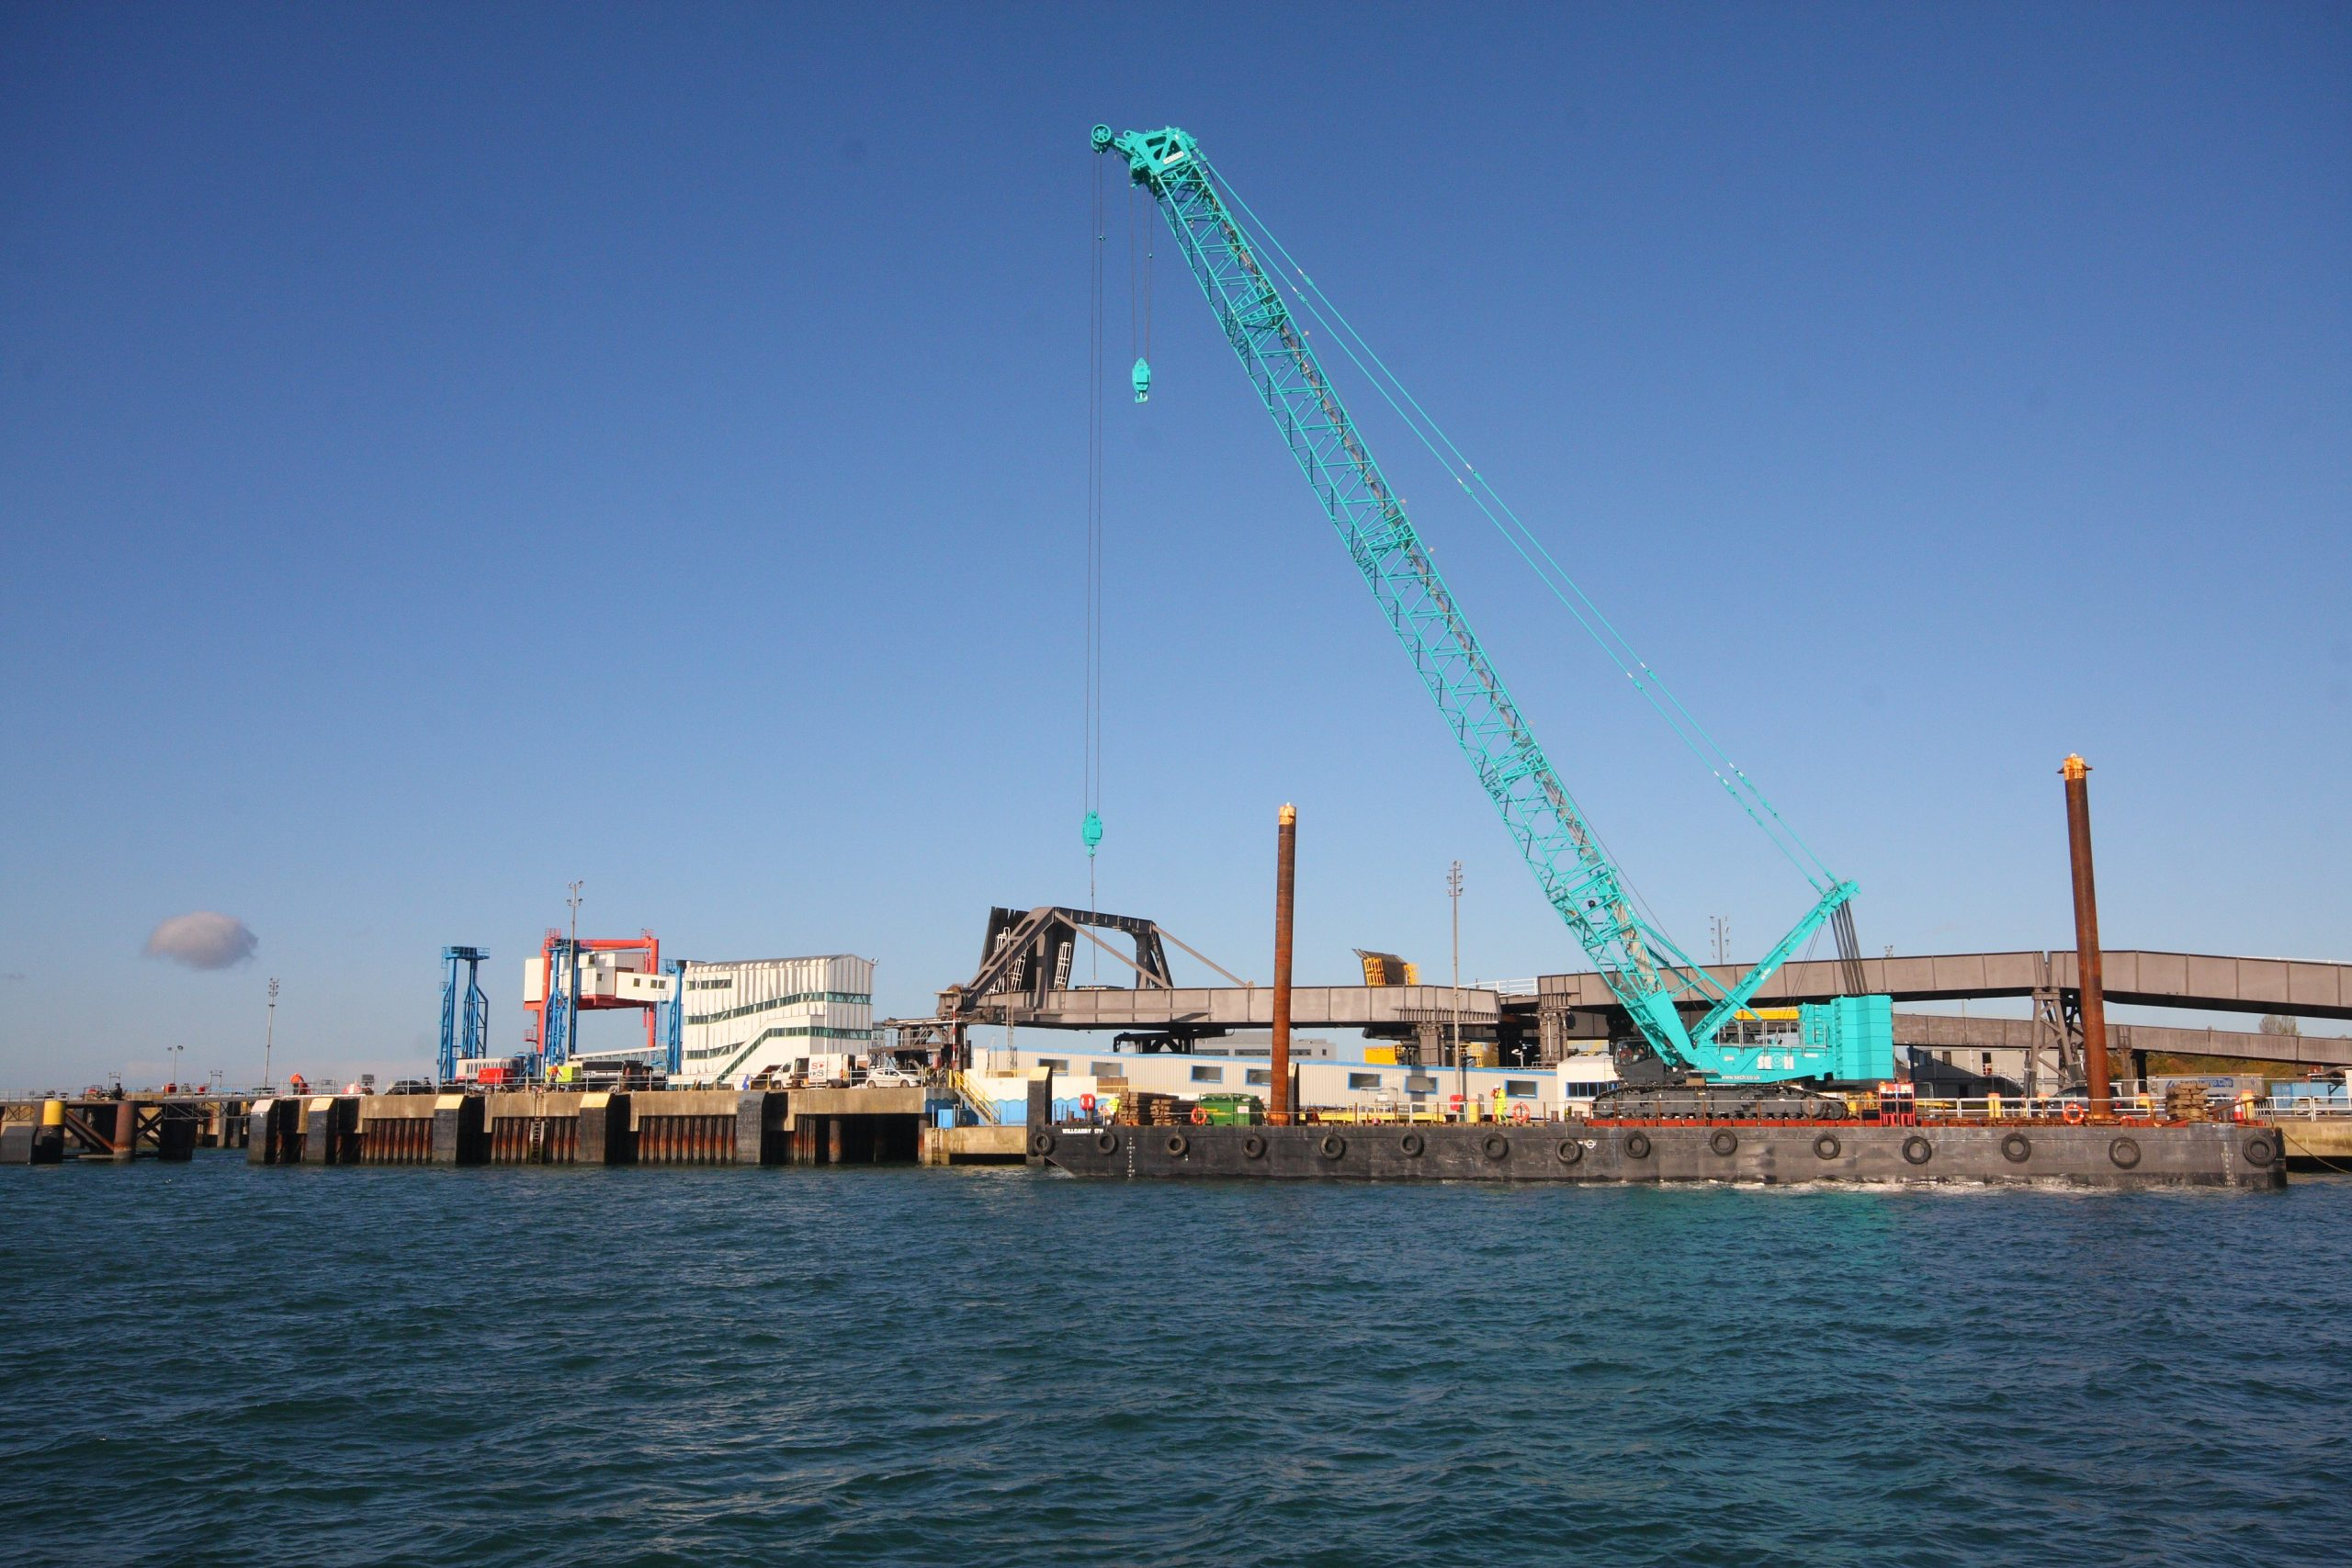 Berth 2 Crane - Wide Shot